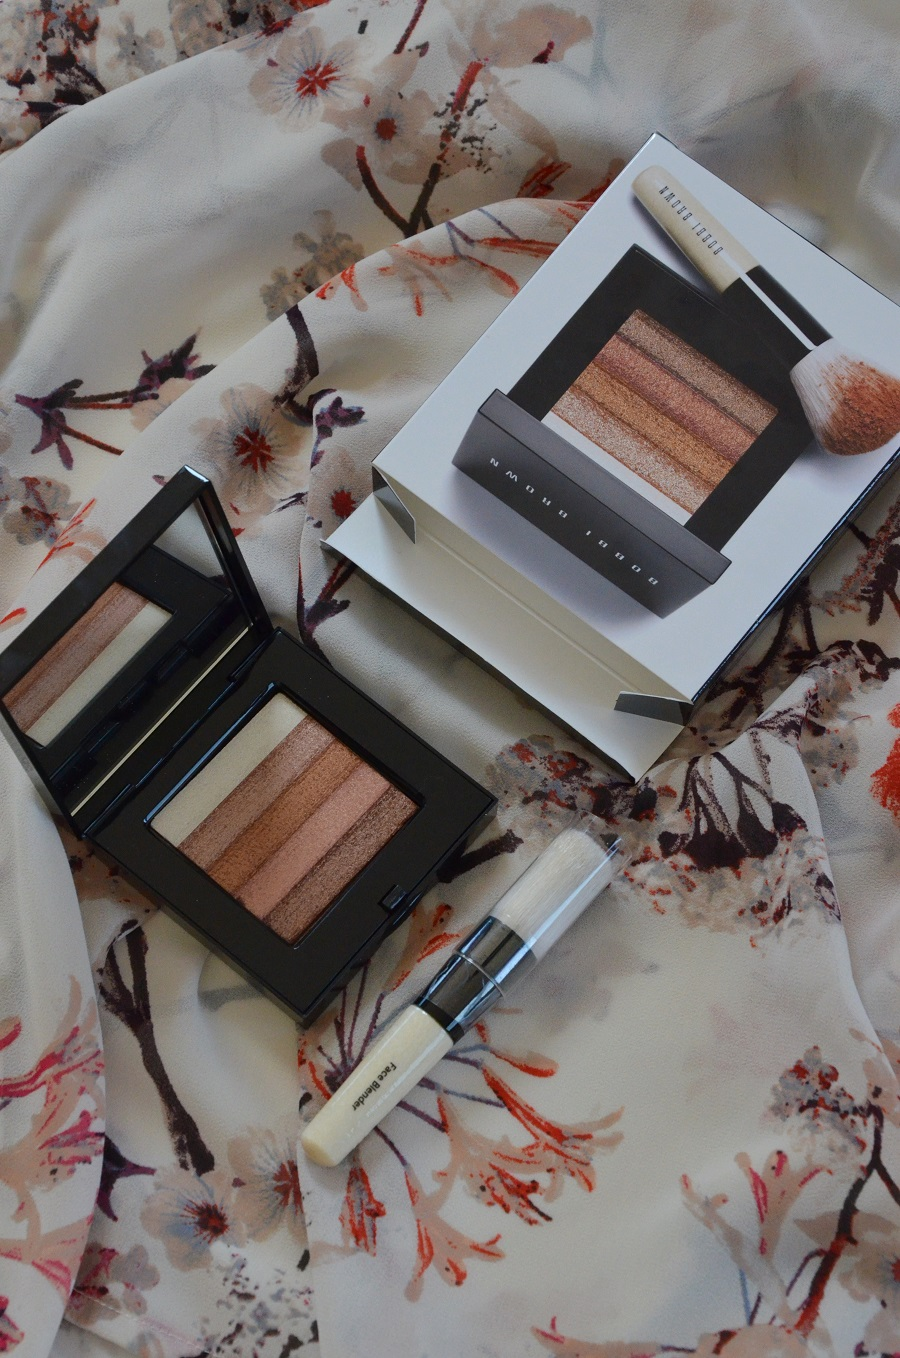 10-bobbi-brown-shimmer-brick-bronze-review-swatches-365-beauty-tips